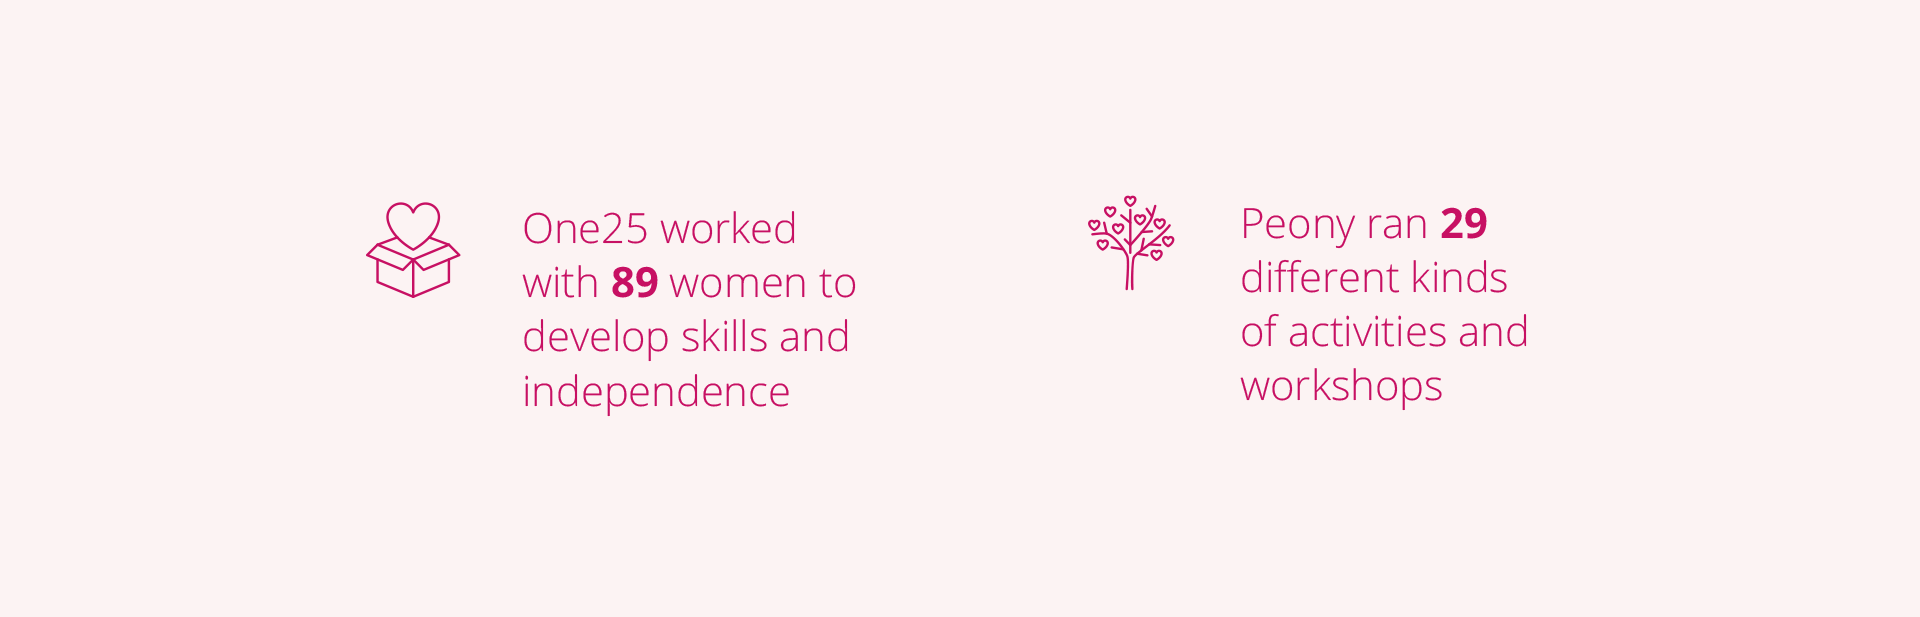 One25 worked with 89 women last year to develop skills and independence. Peony ran 29 different kinds of activities and workshops.